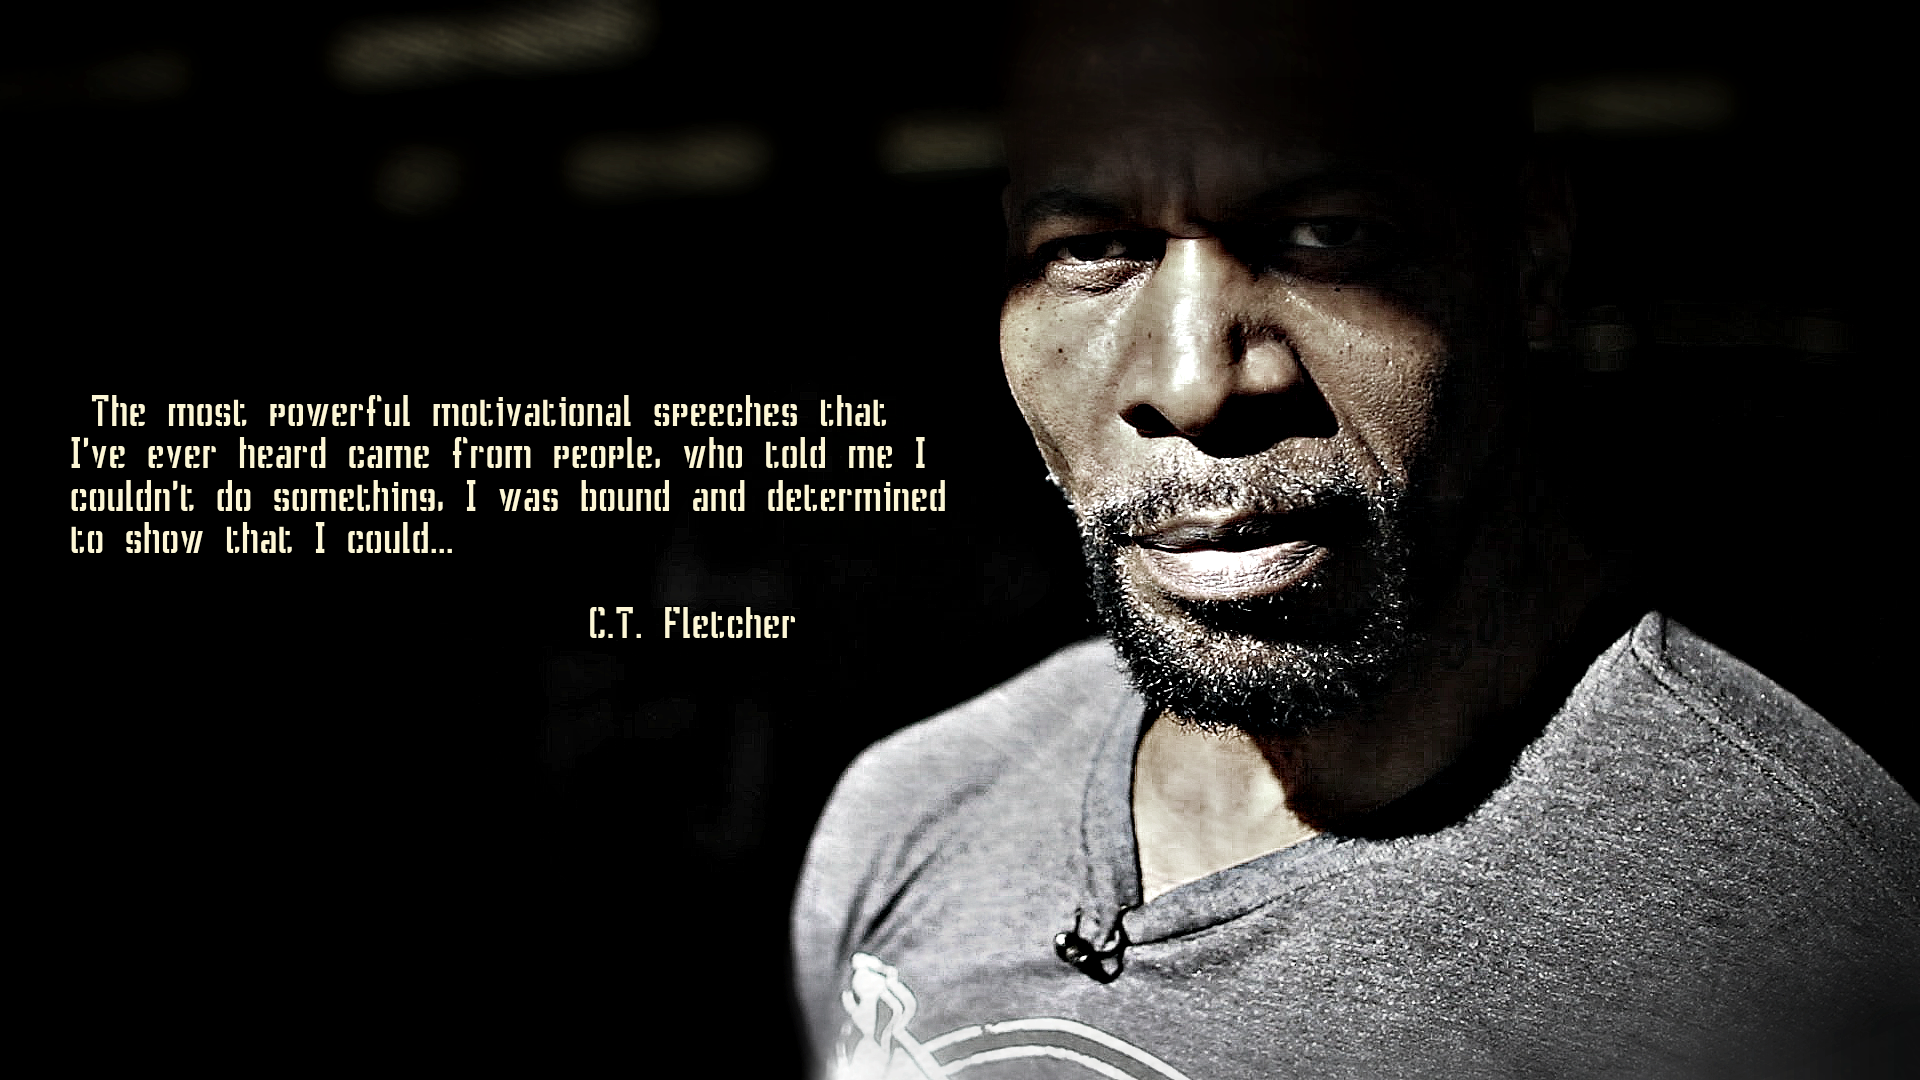 Powerful Motivational Speeches C T Fletcher Daily Quotes Sayings Pictures